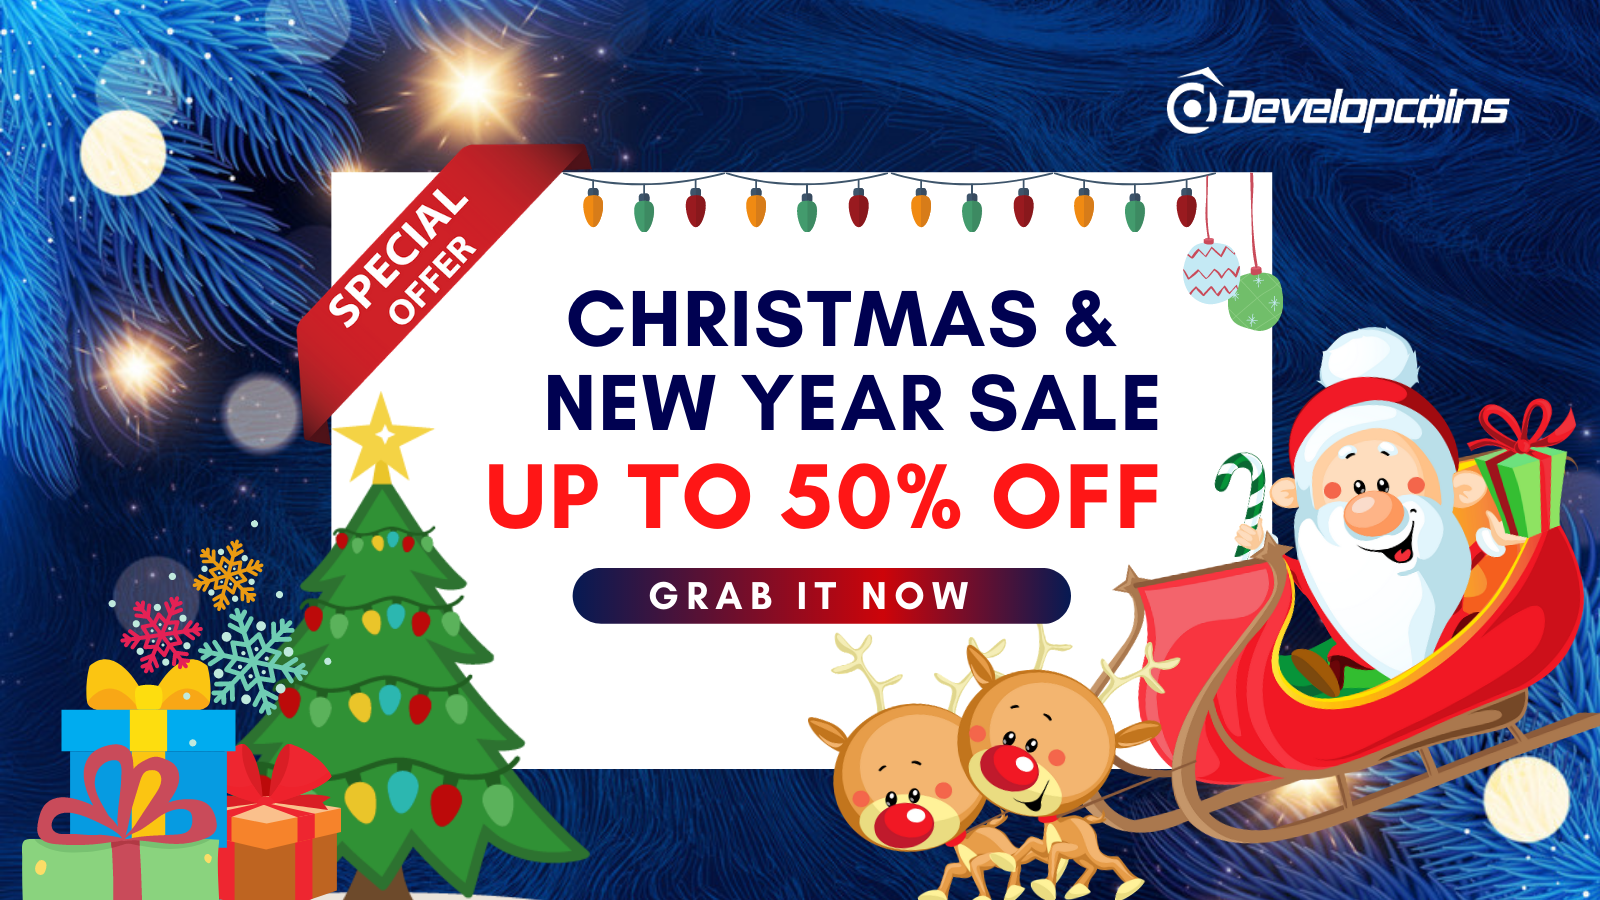 Grab Exclusive Christmas And New Year Super Sale Offers from Developcoins!